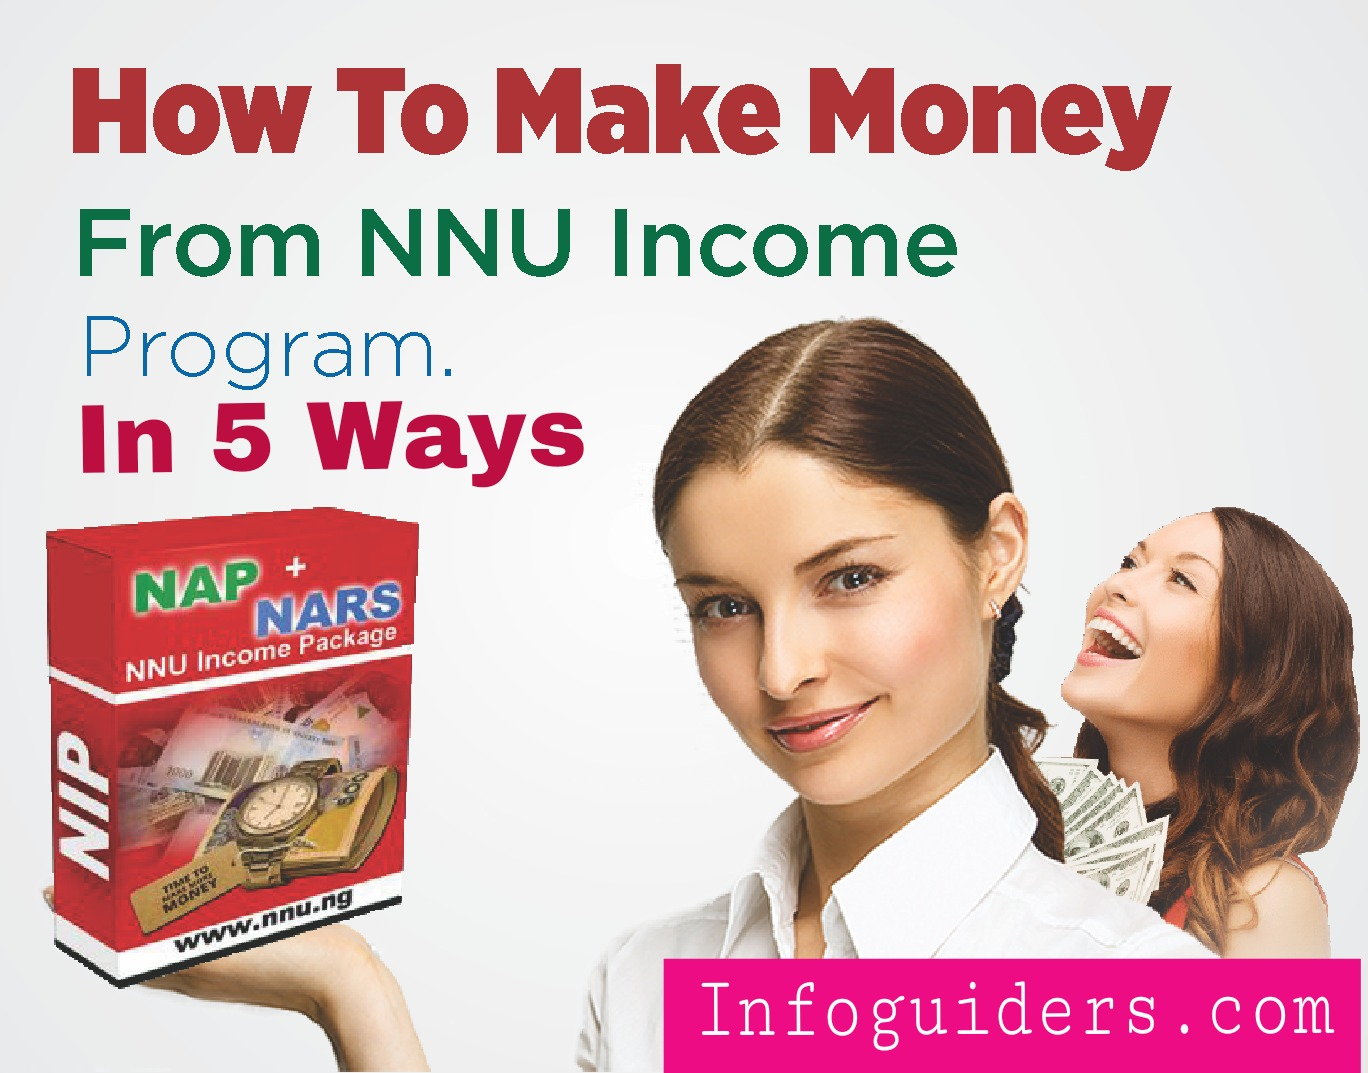 Ways to make maoney from NNU Income Program